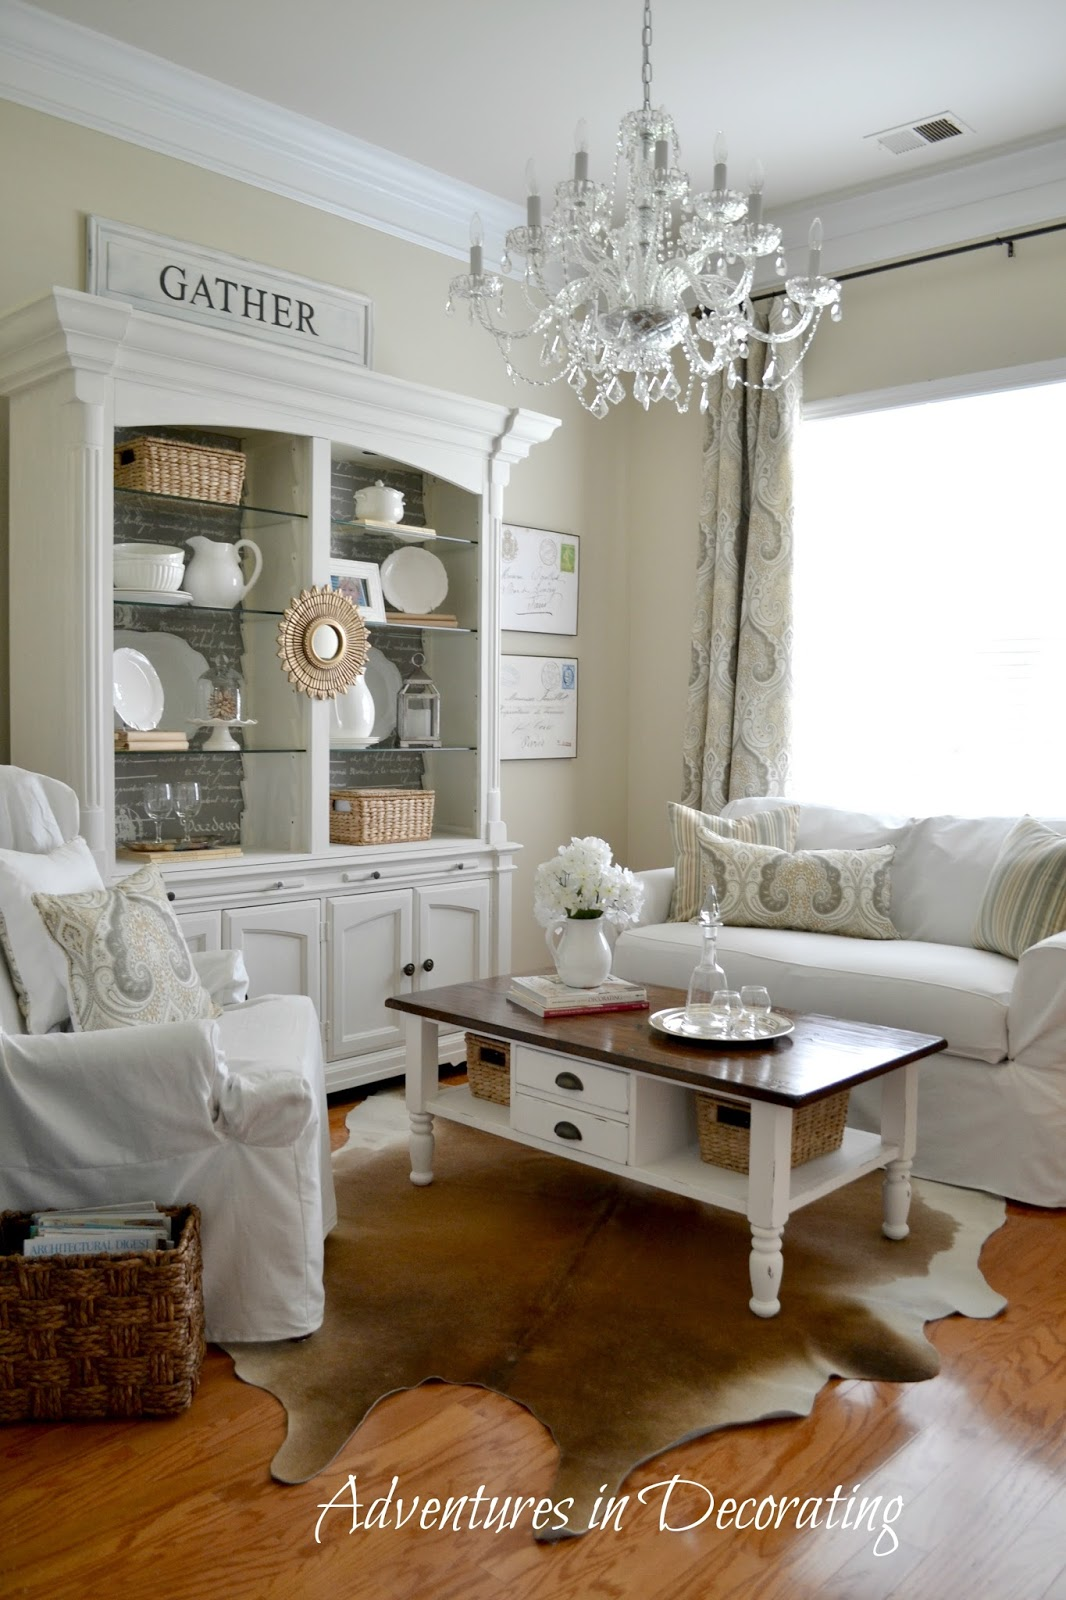 Kitchen Sitting Rooms Designs: Adventures In Decorating: Sitting Room Changes ... Again